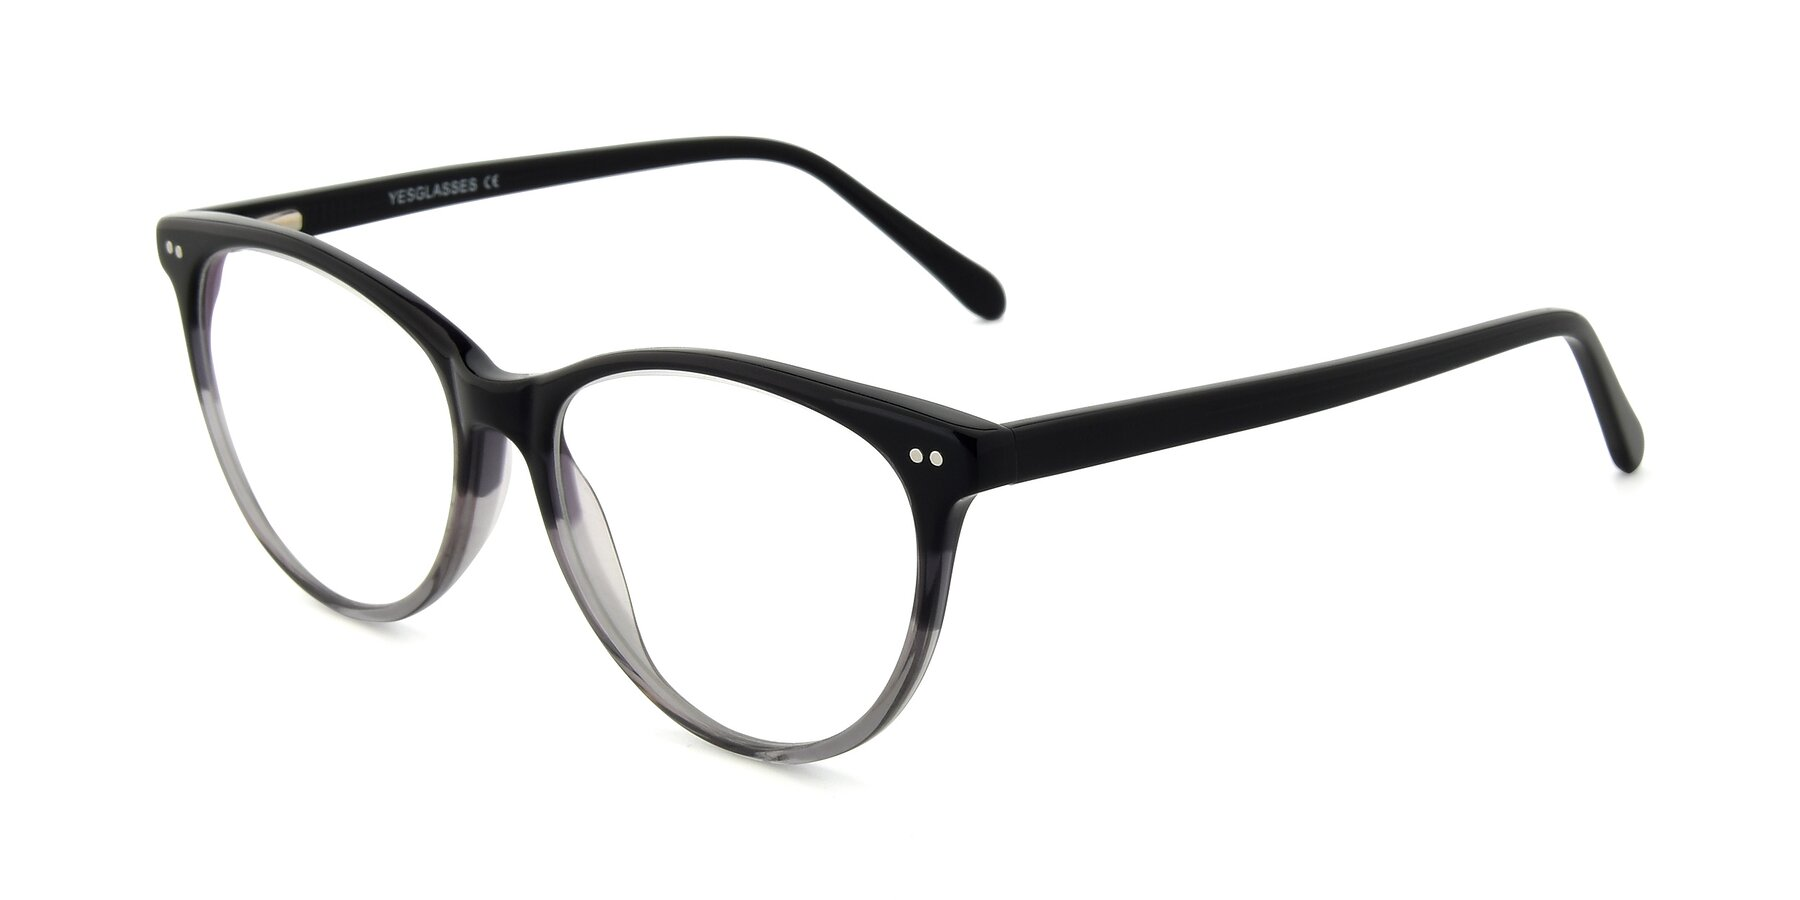 Angle of SR6050 in Transparent Gradient Black with Clear Eyeglass Lenses